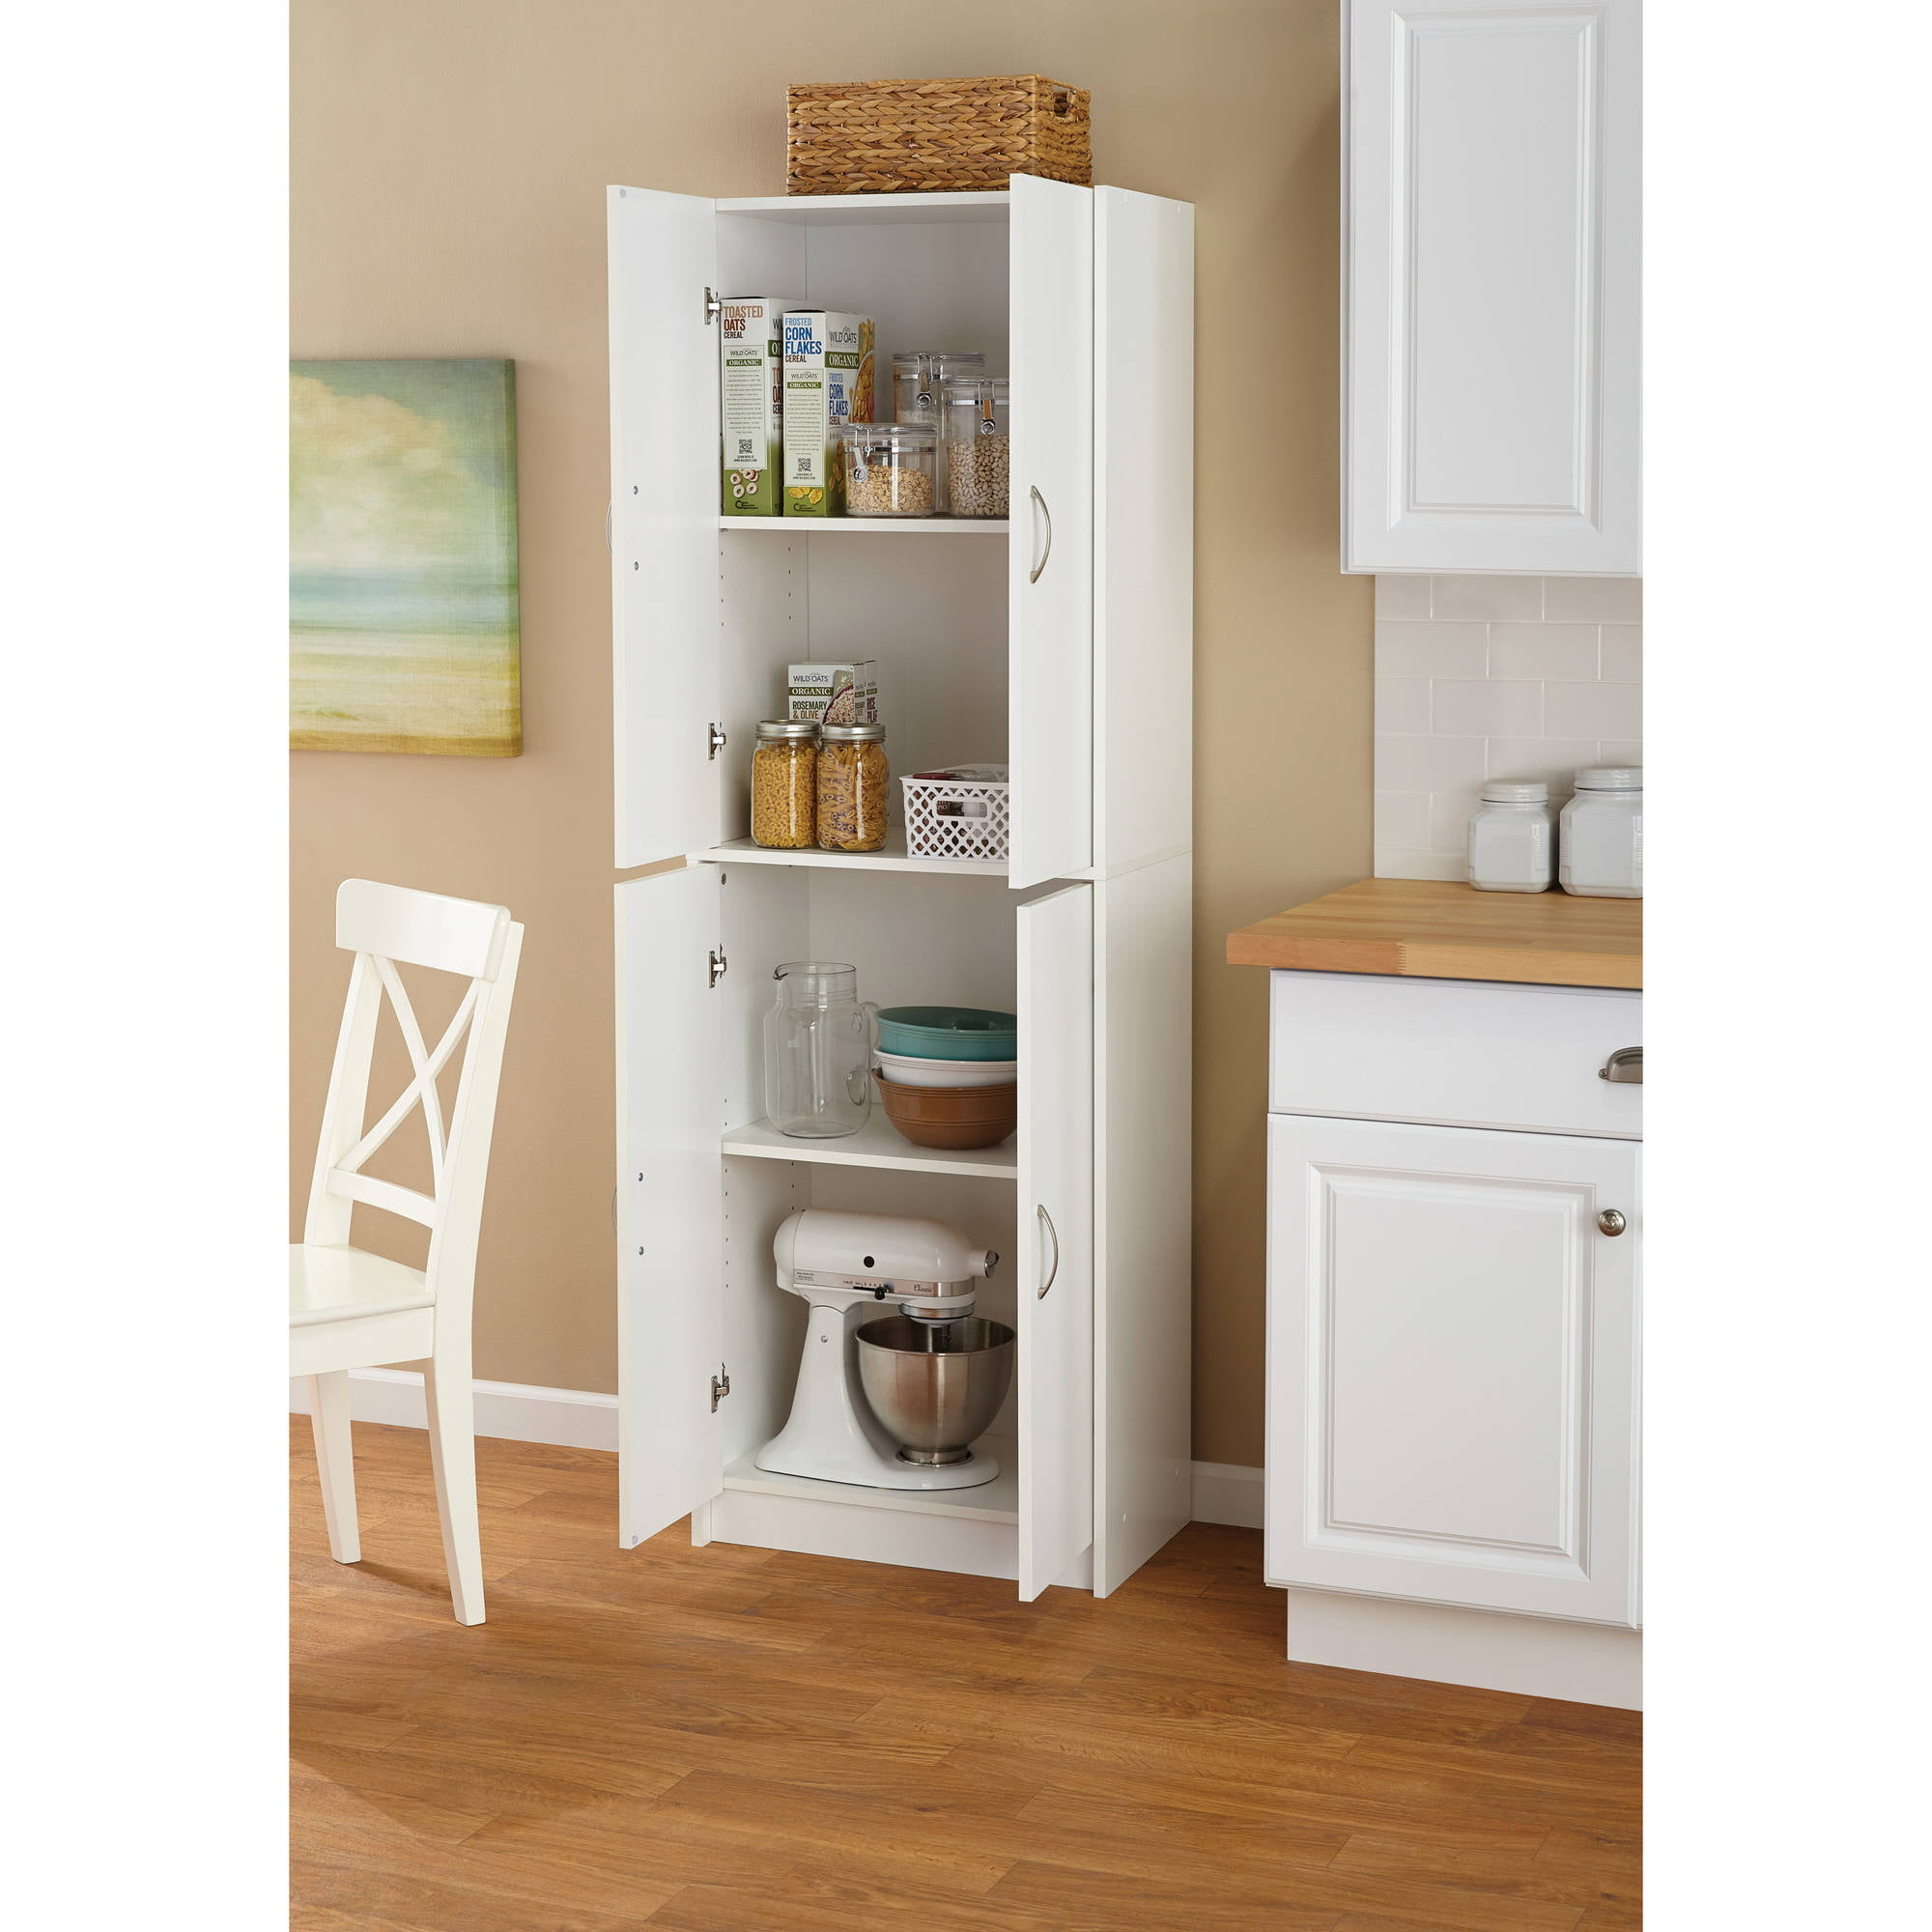 Pantry Door Organizer Walmart: Storage Cabinet With Tempered Glass Door